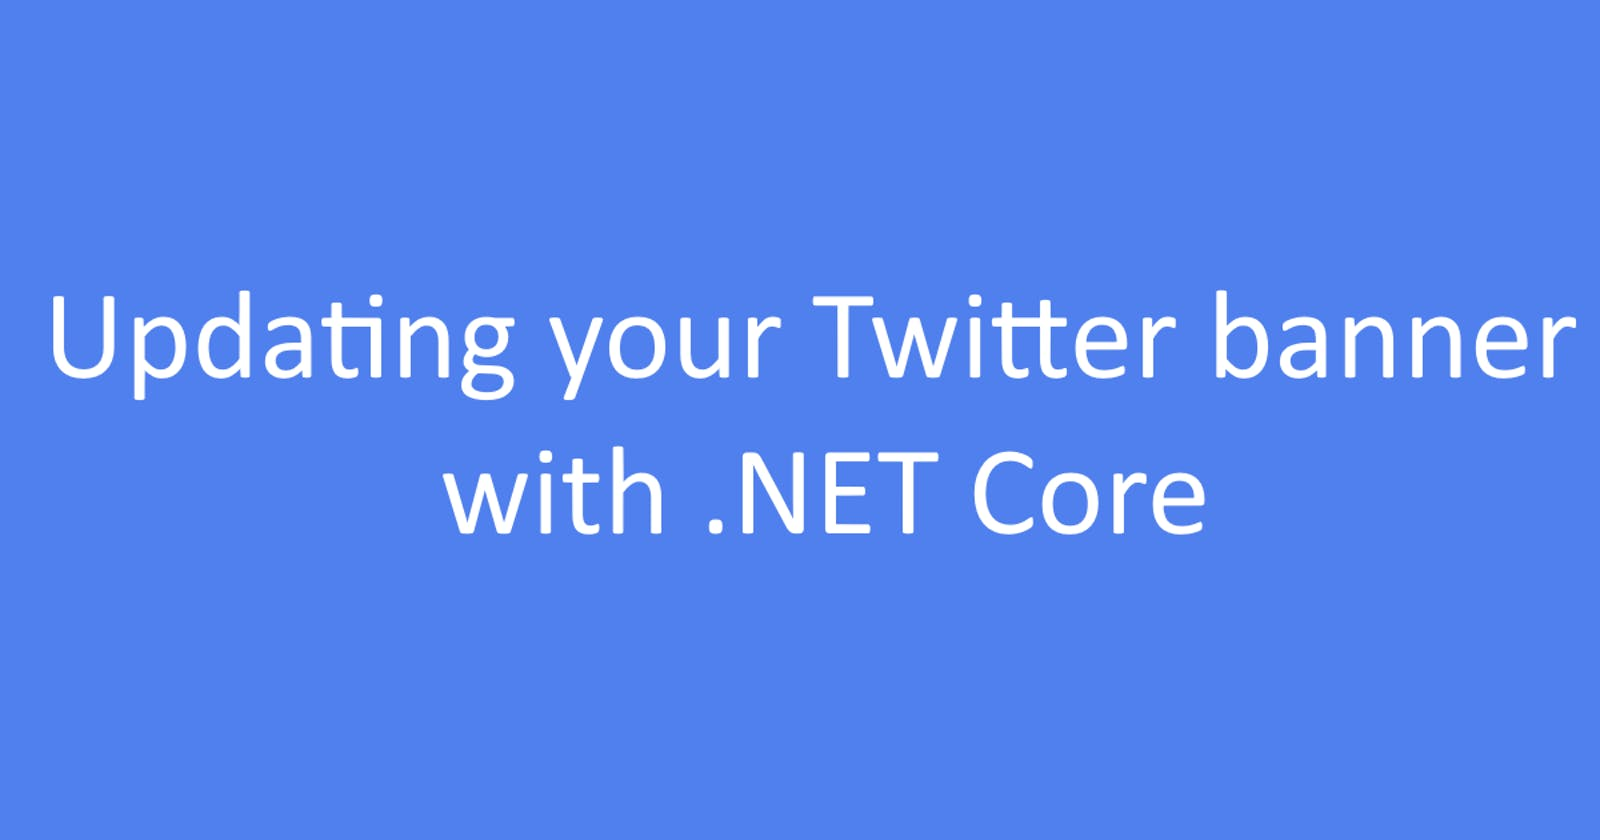 Updating your Twitter banner with .NET Core